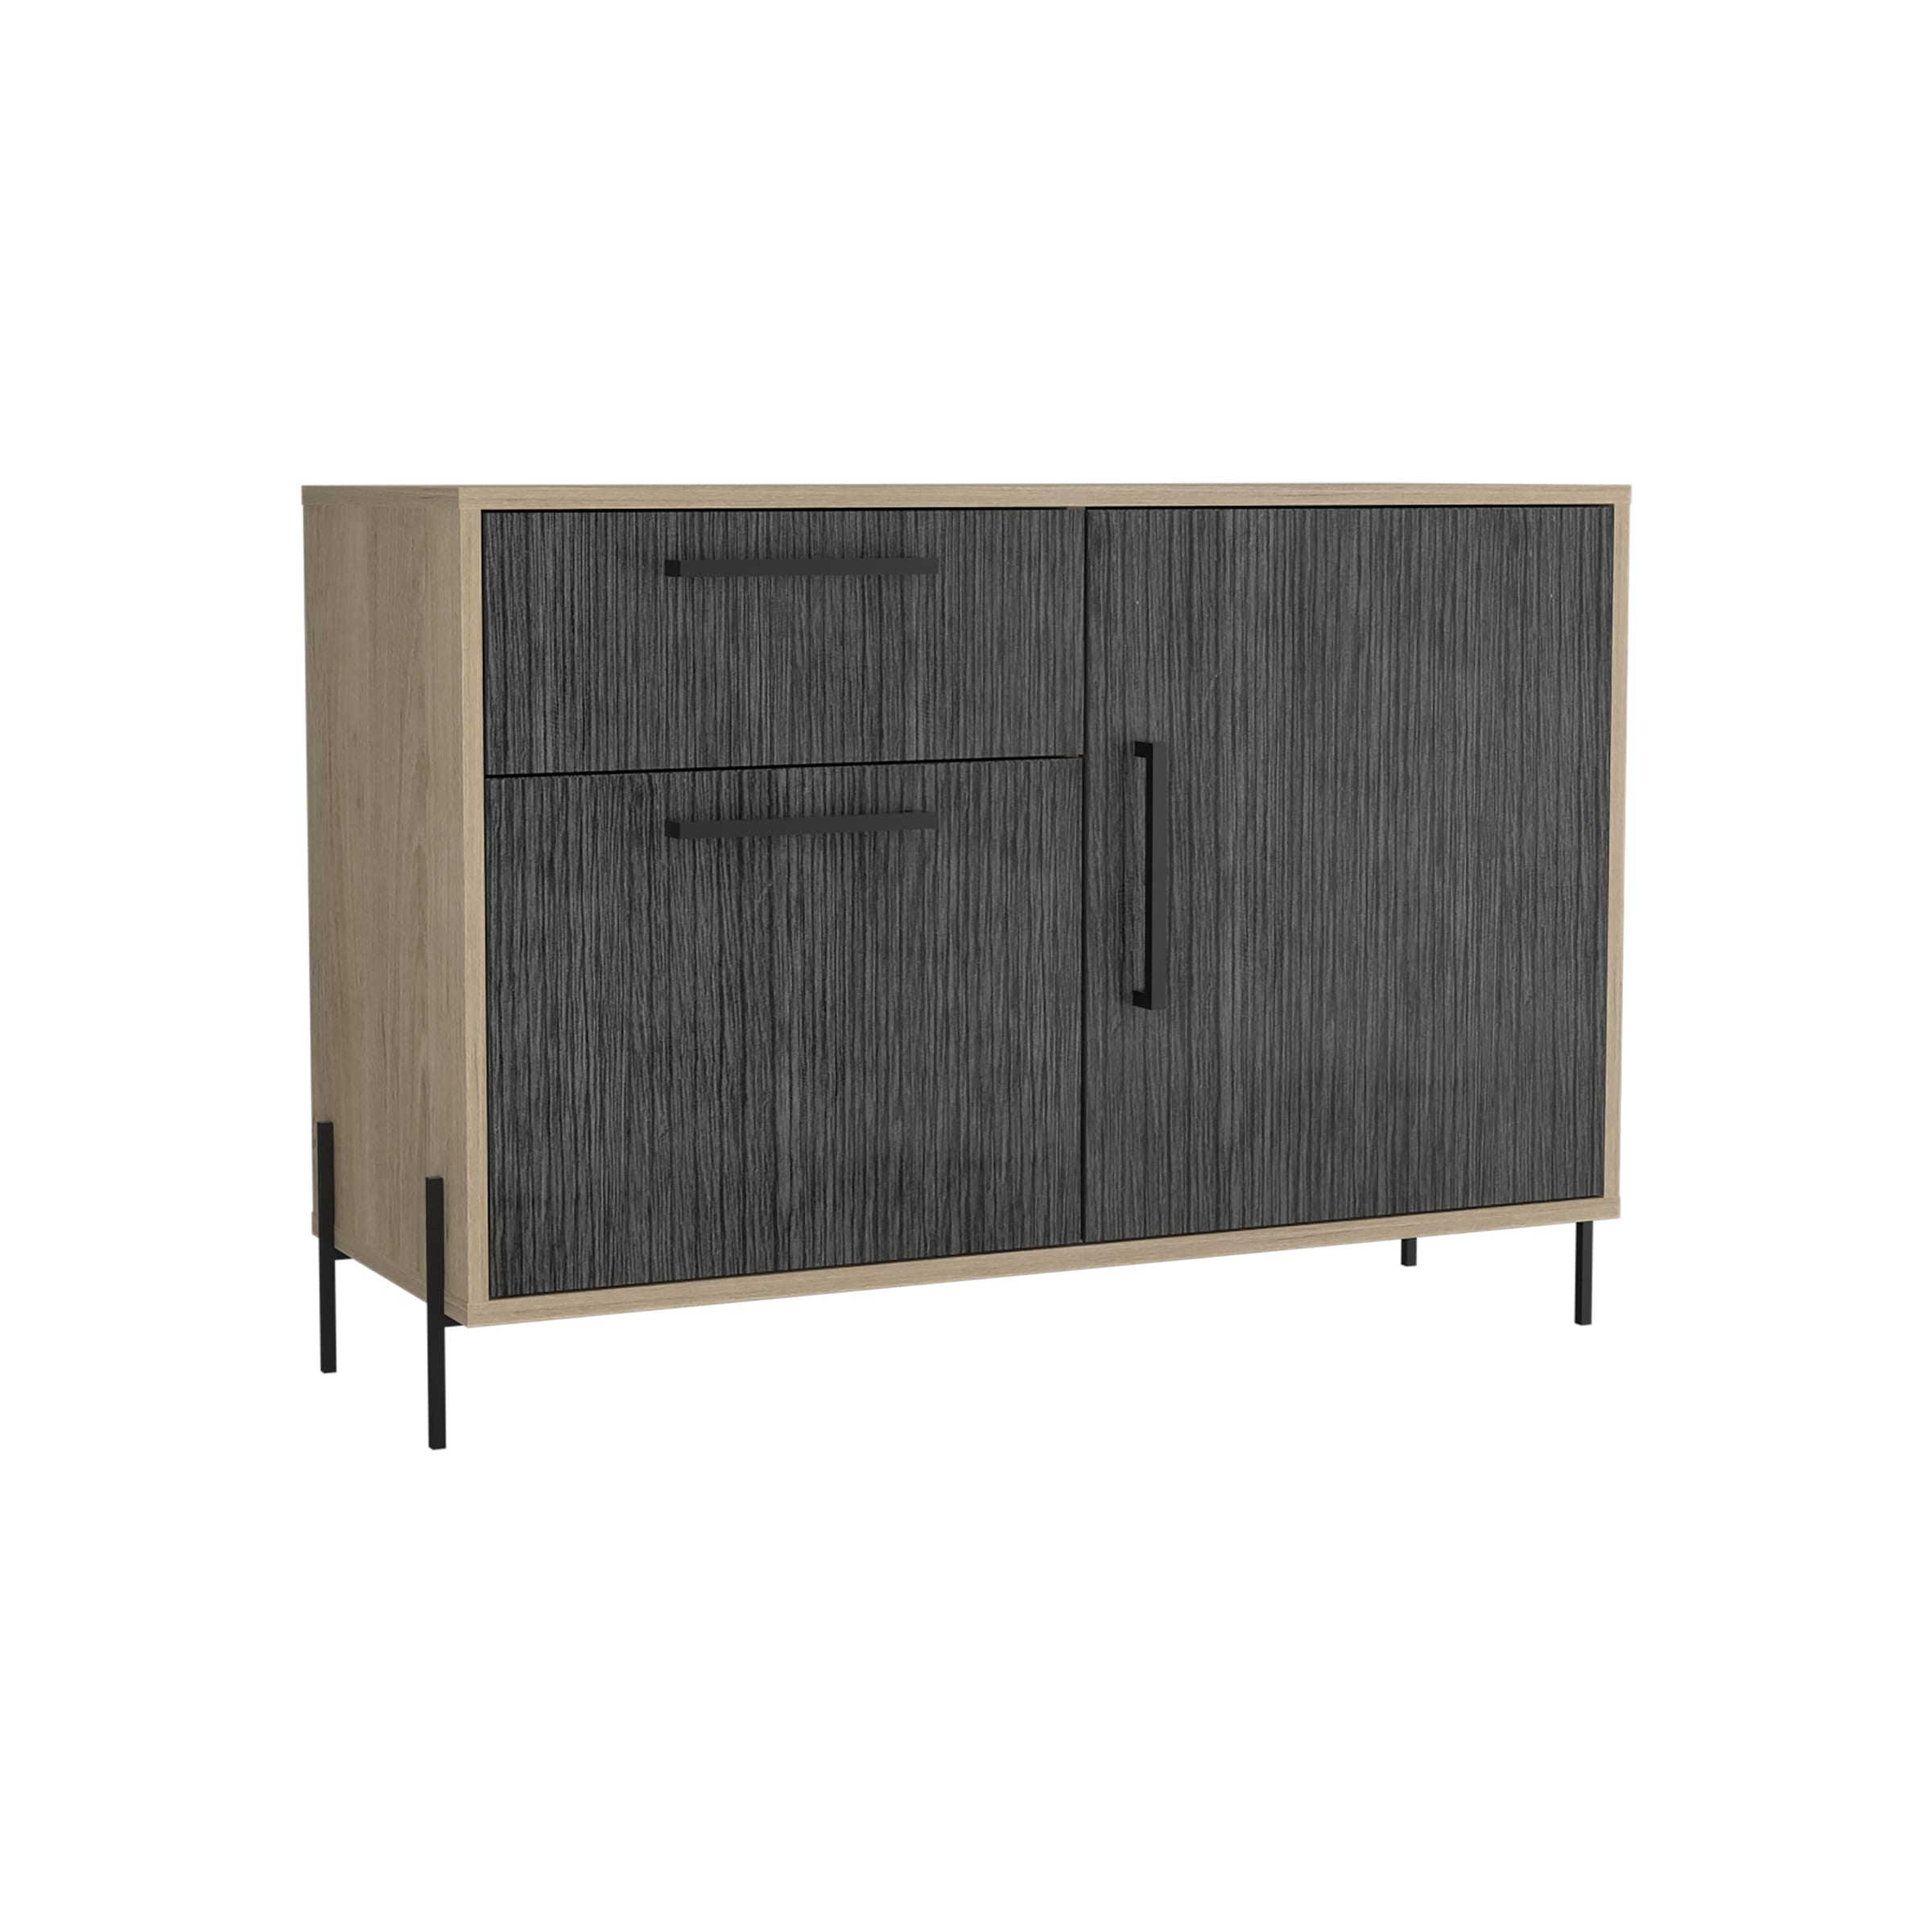 Harvey small sideboard with 2 doors & 1 drawer